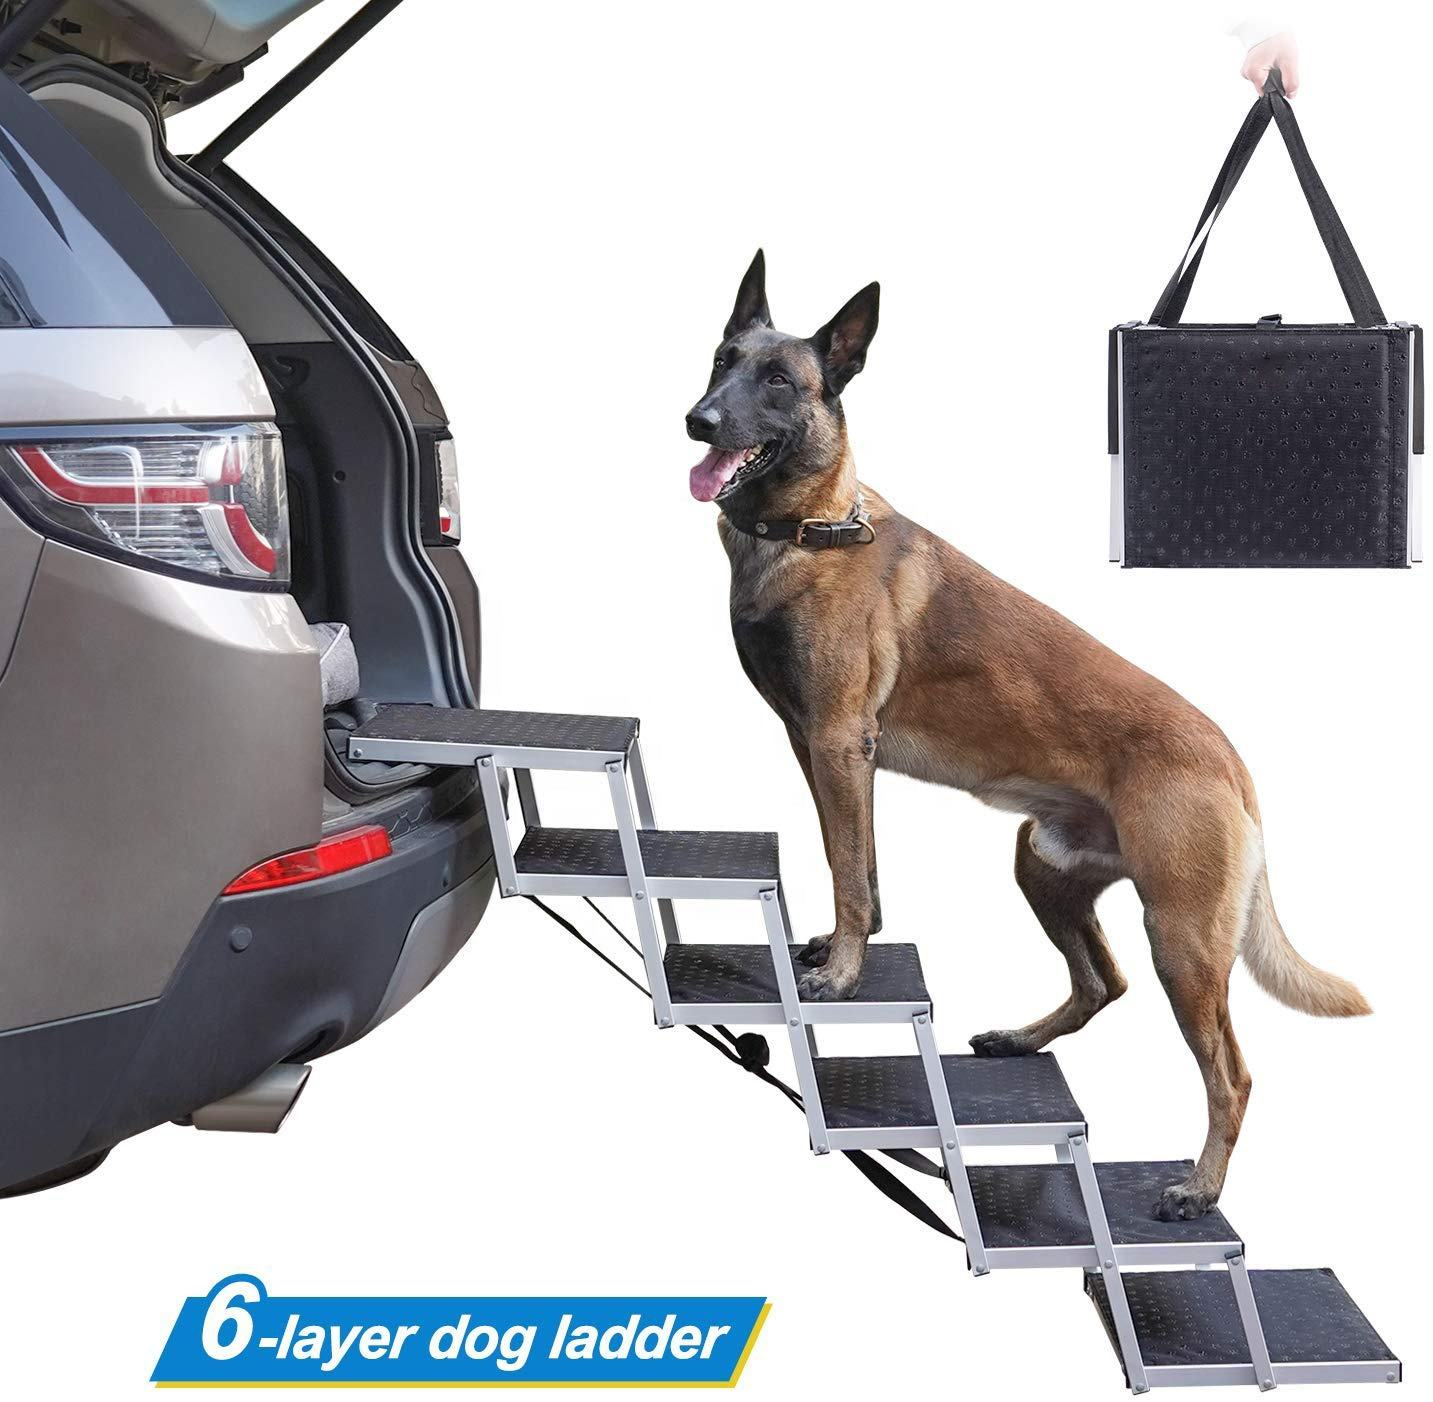 Folding portable aluminum dog stairs dog steps folding pet dog ramp for suv car pet loader